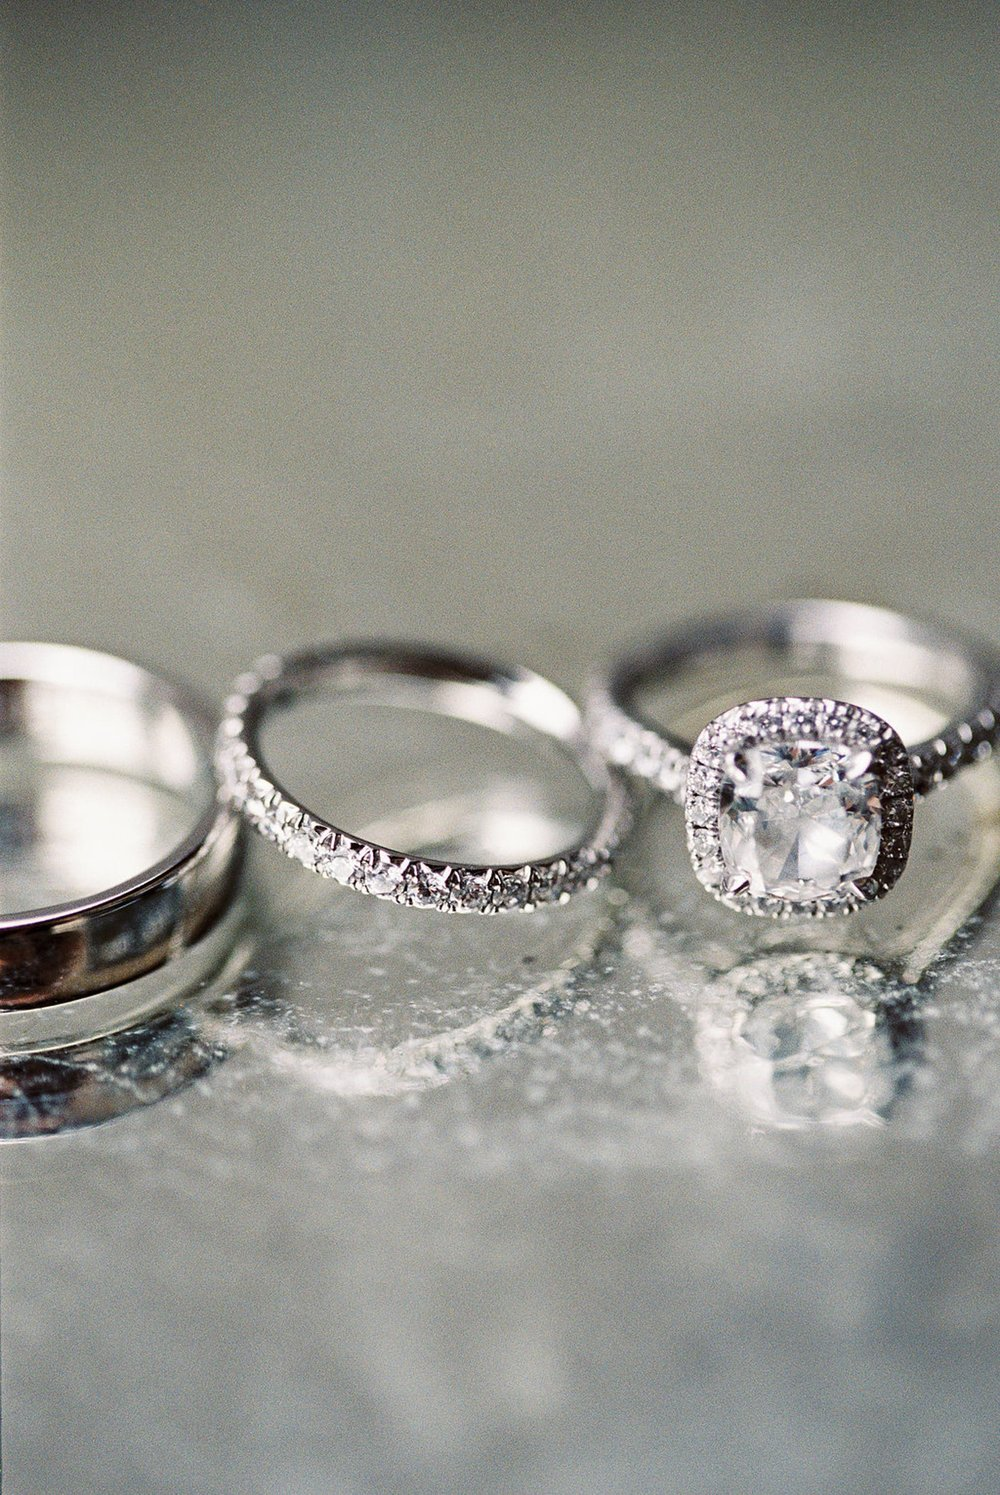 www.santabarbarawedding.com | El Encanto | Coco Rose Design | This Modern Romance | Wedding Rings